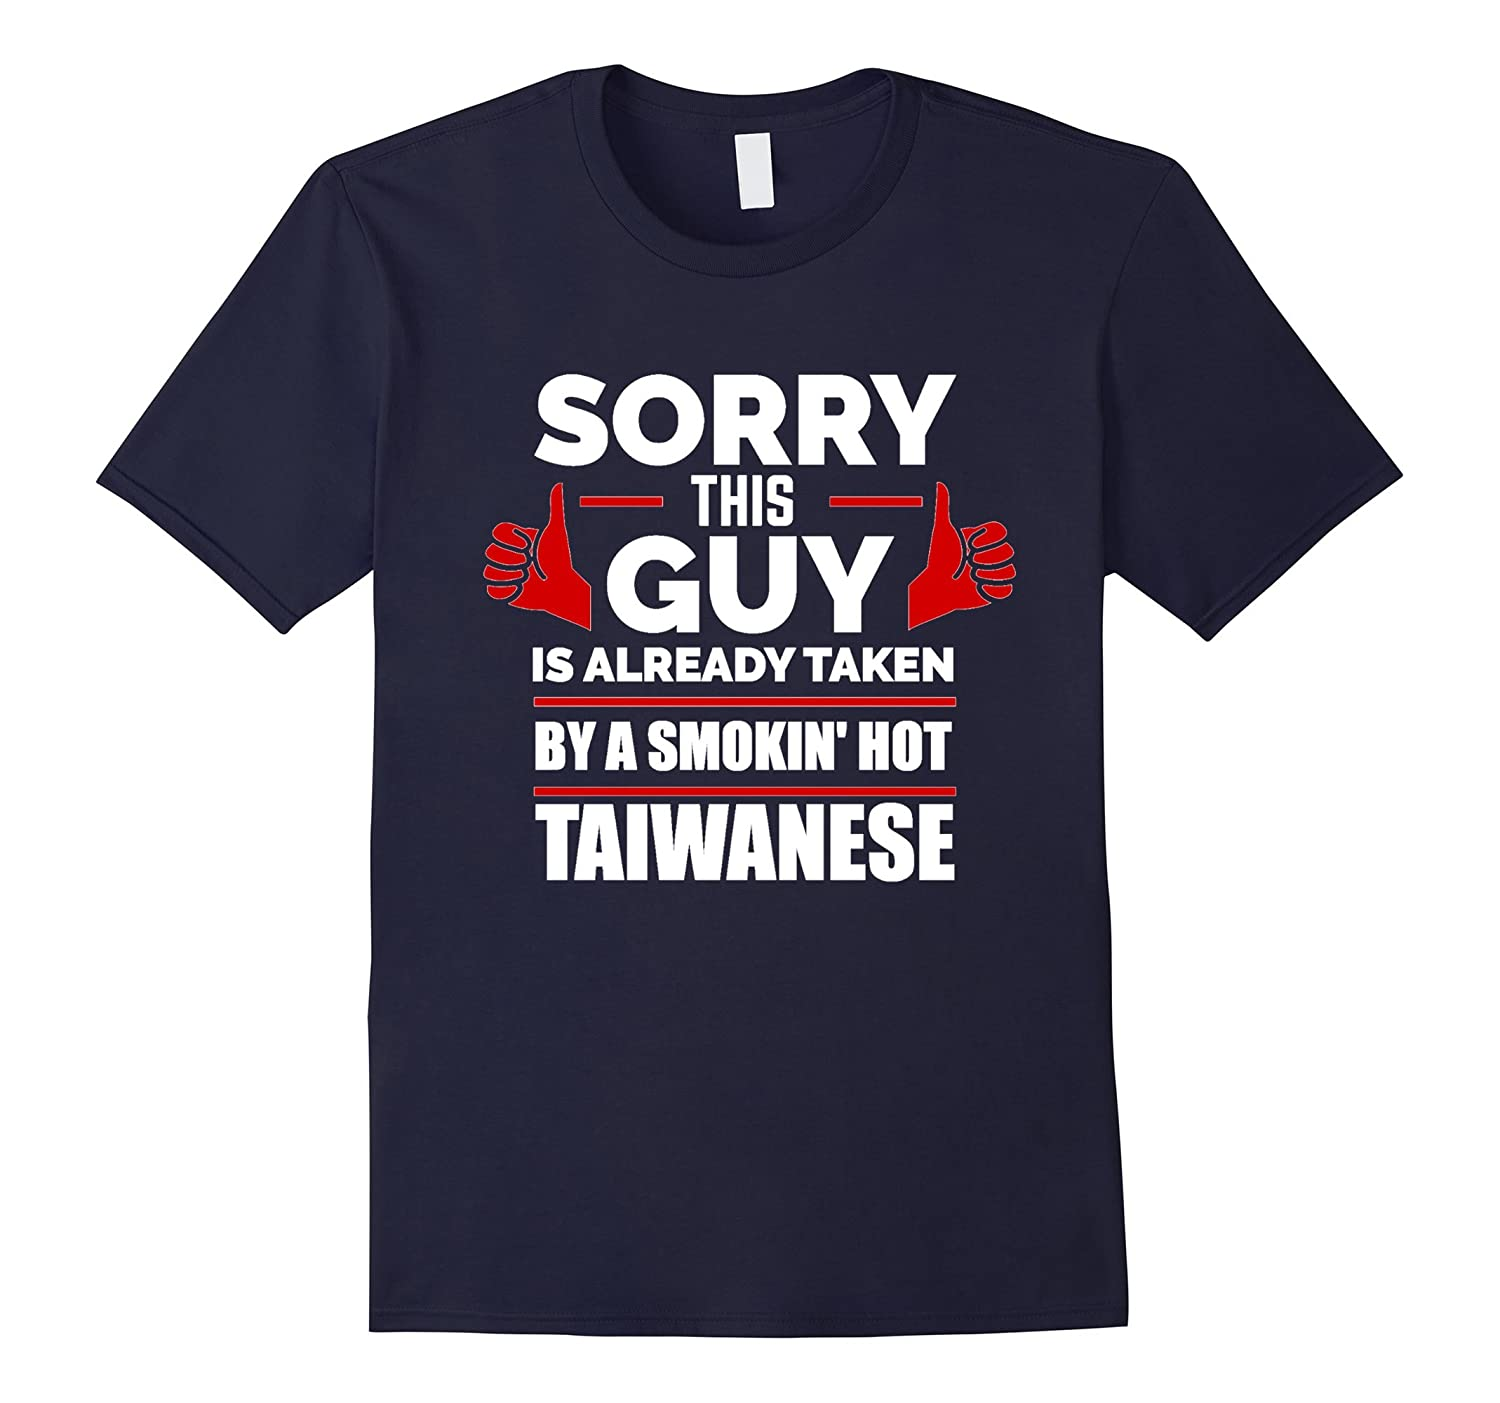 Sorry This Guy is Taken by a Smoking Hot Taiwanese T-shirt-Vaci